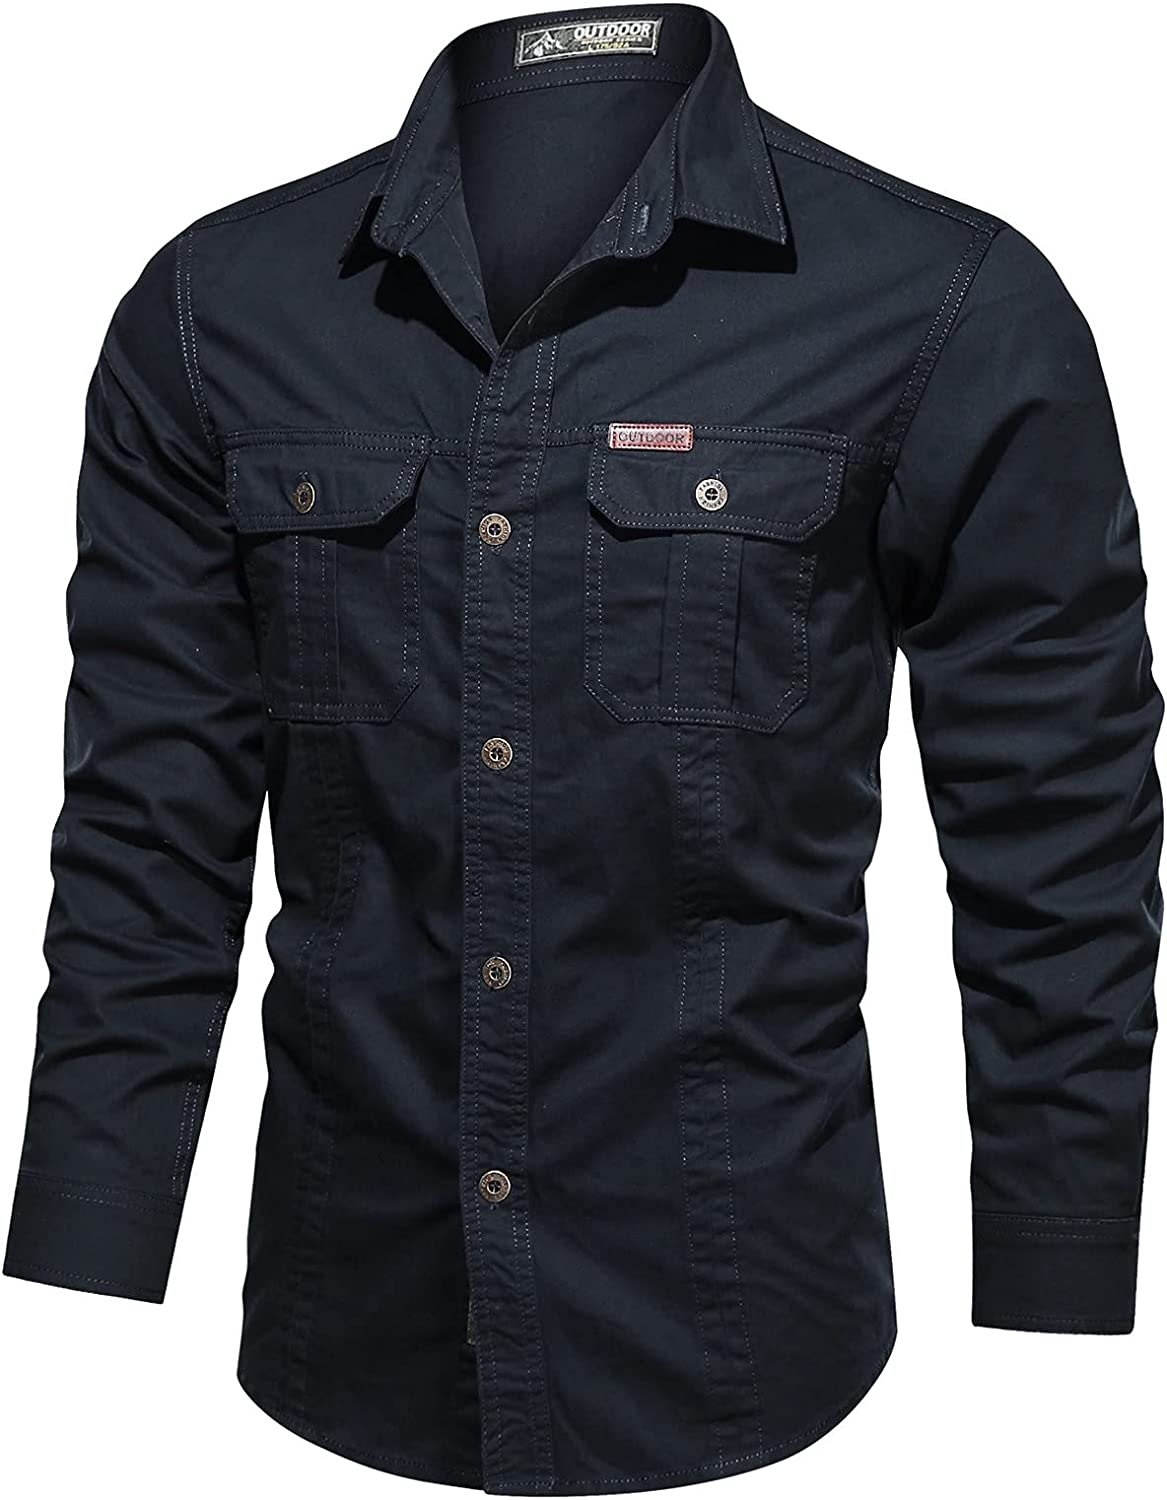 Men's Henley Cotton Casual Long Sleeve Lightweight Button T-Shirts Outdoor Washed Shirt Military Style Plus Sizes Shirts